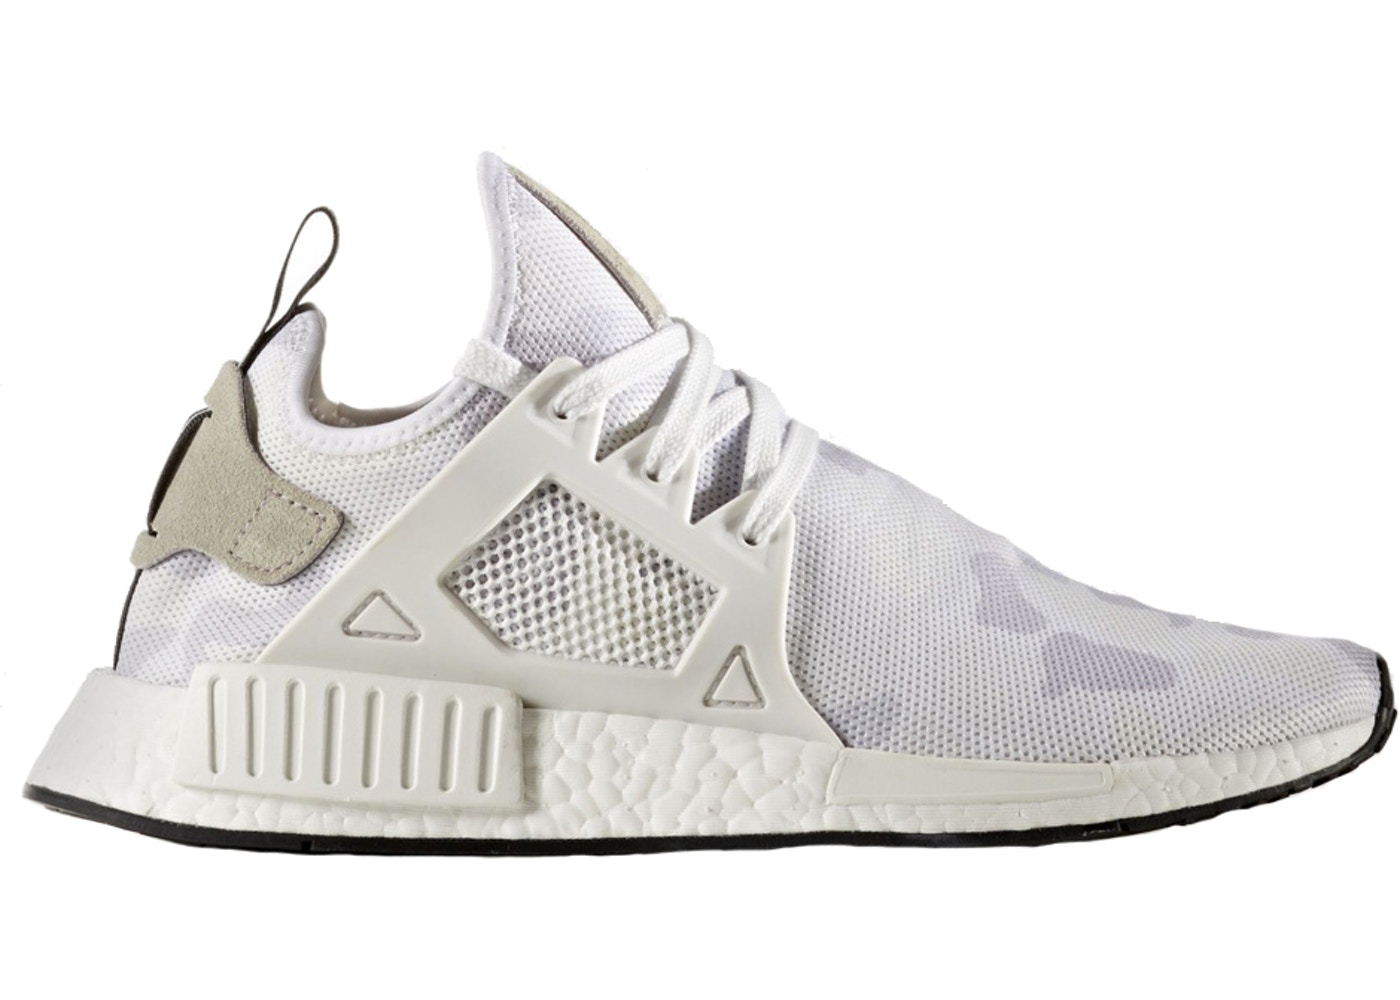 check out 186f5 b1a77 adidas NMD XR1 White Duck Camo